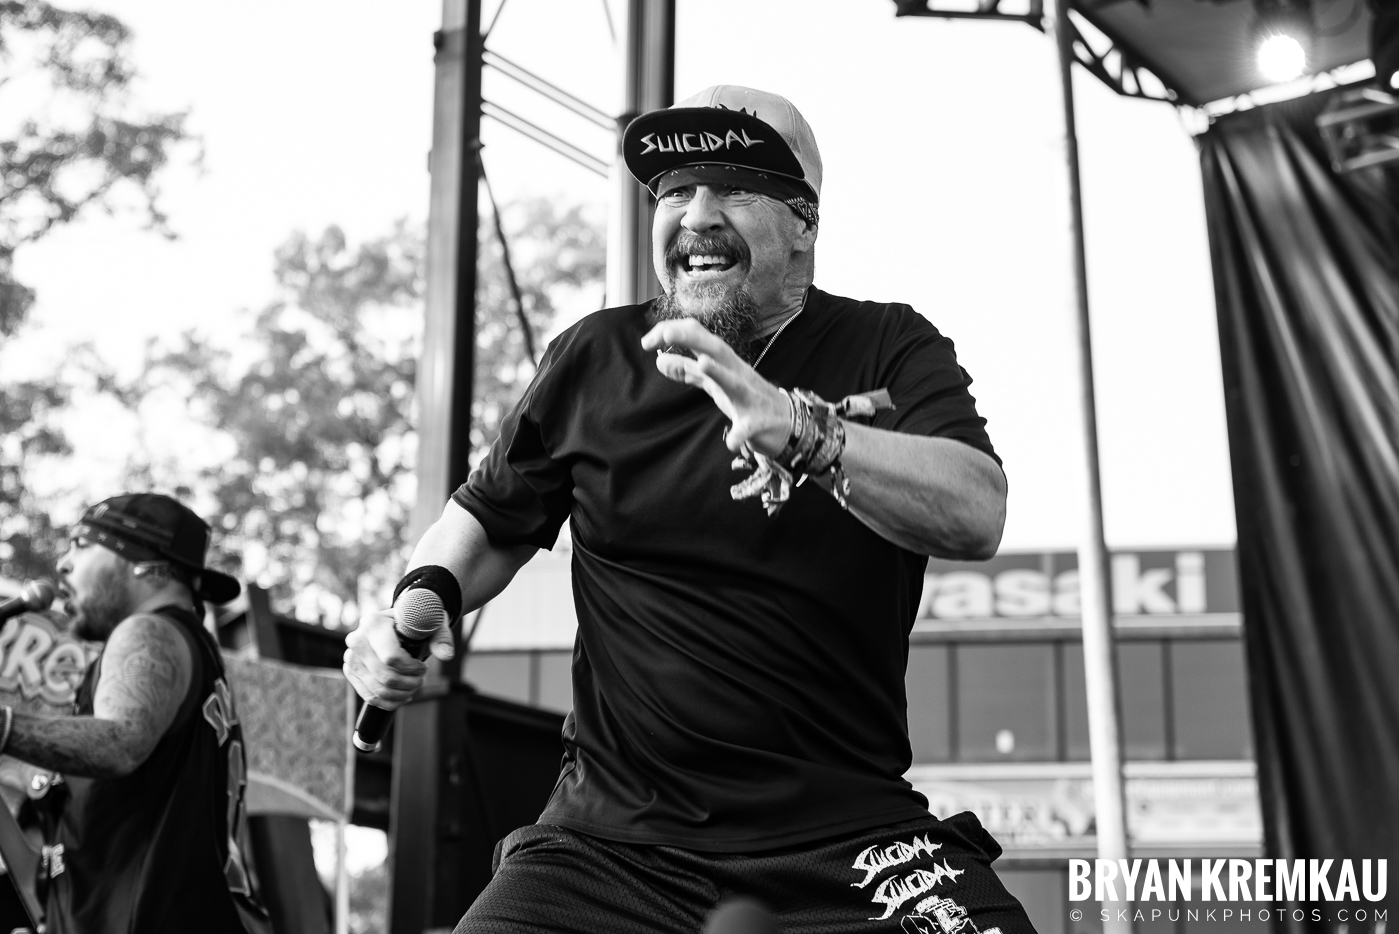 Suicidal Tendencies @ The Bash Music & Craft Beer Festival, Old Bridge Township Raceway Park, Englishtown, NJ - 6.2.19 (42)